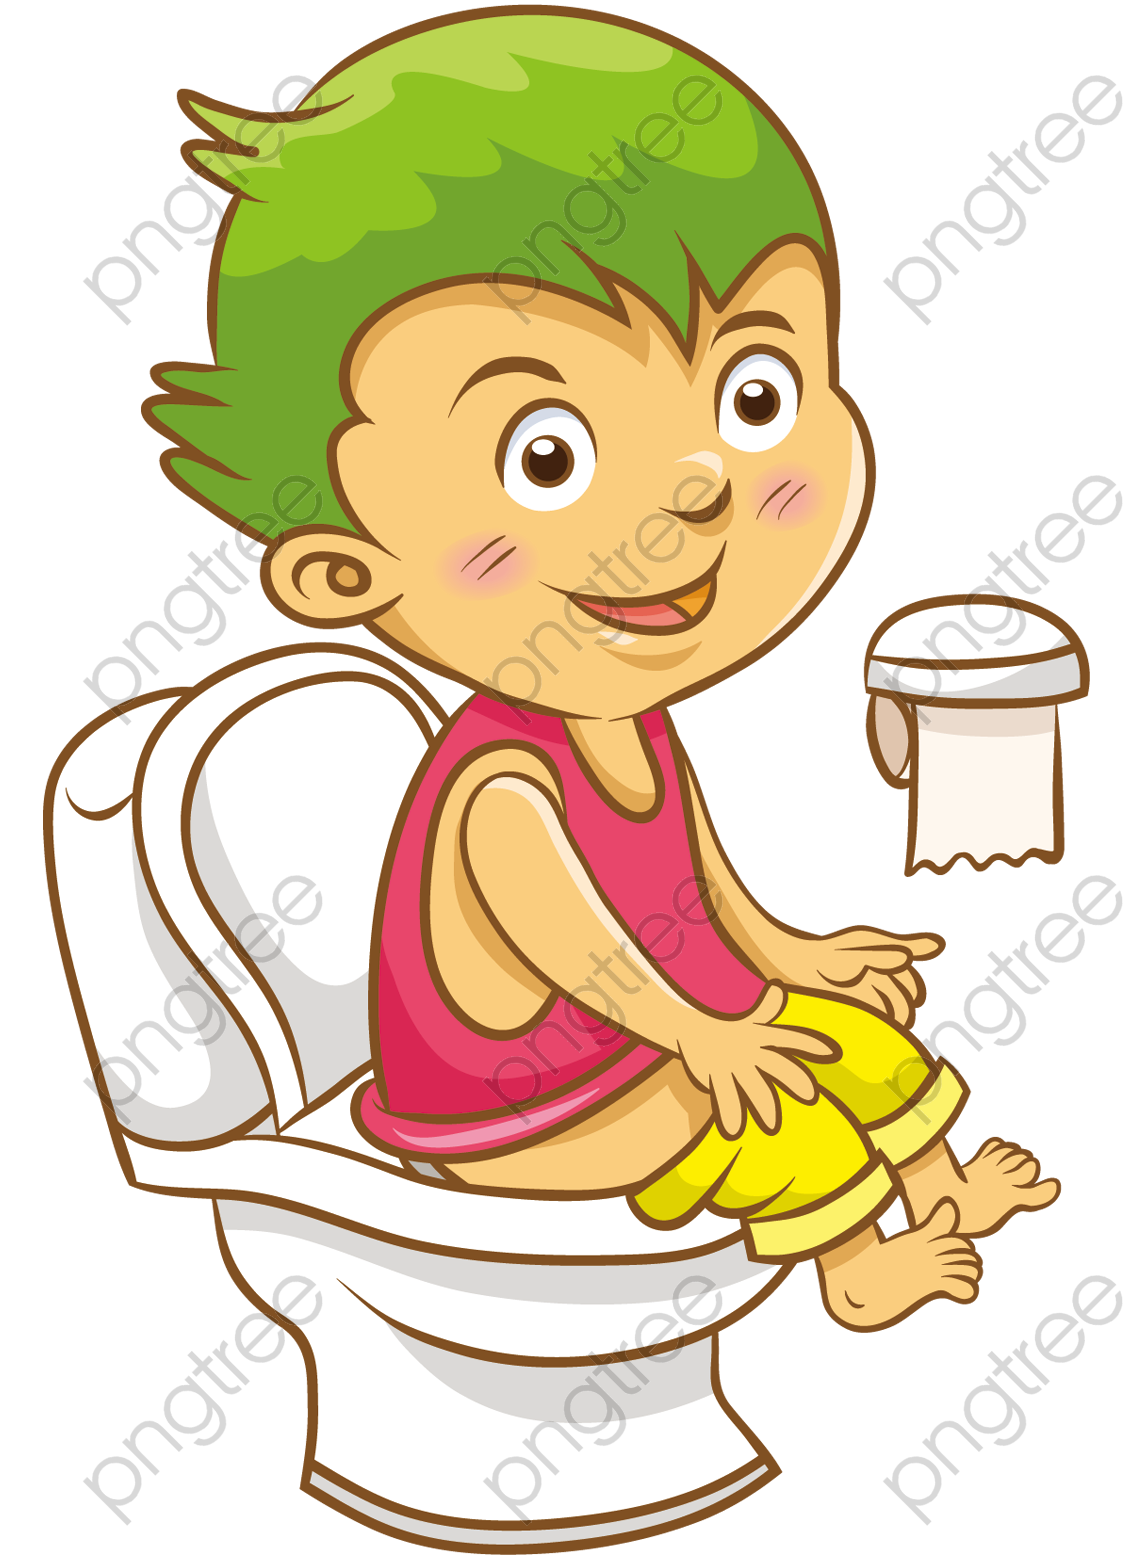 Transparent children's toilet PNG Format Image With Size 1133*1559.